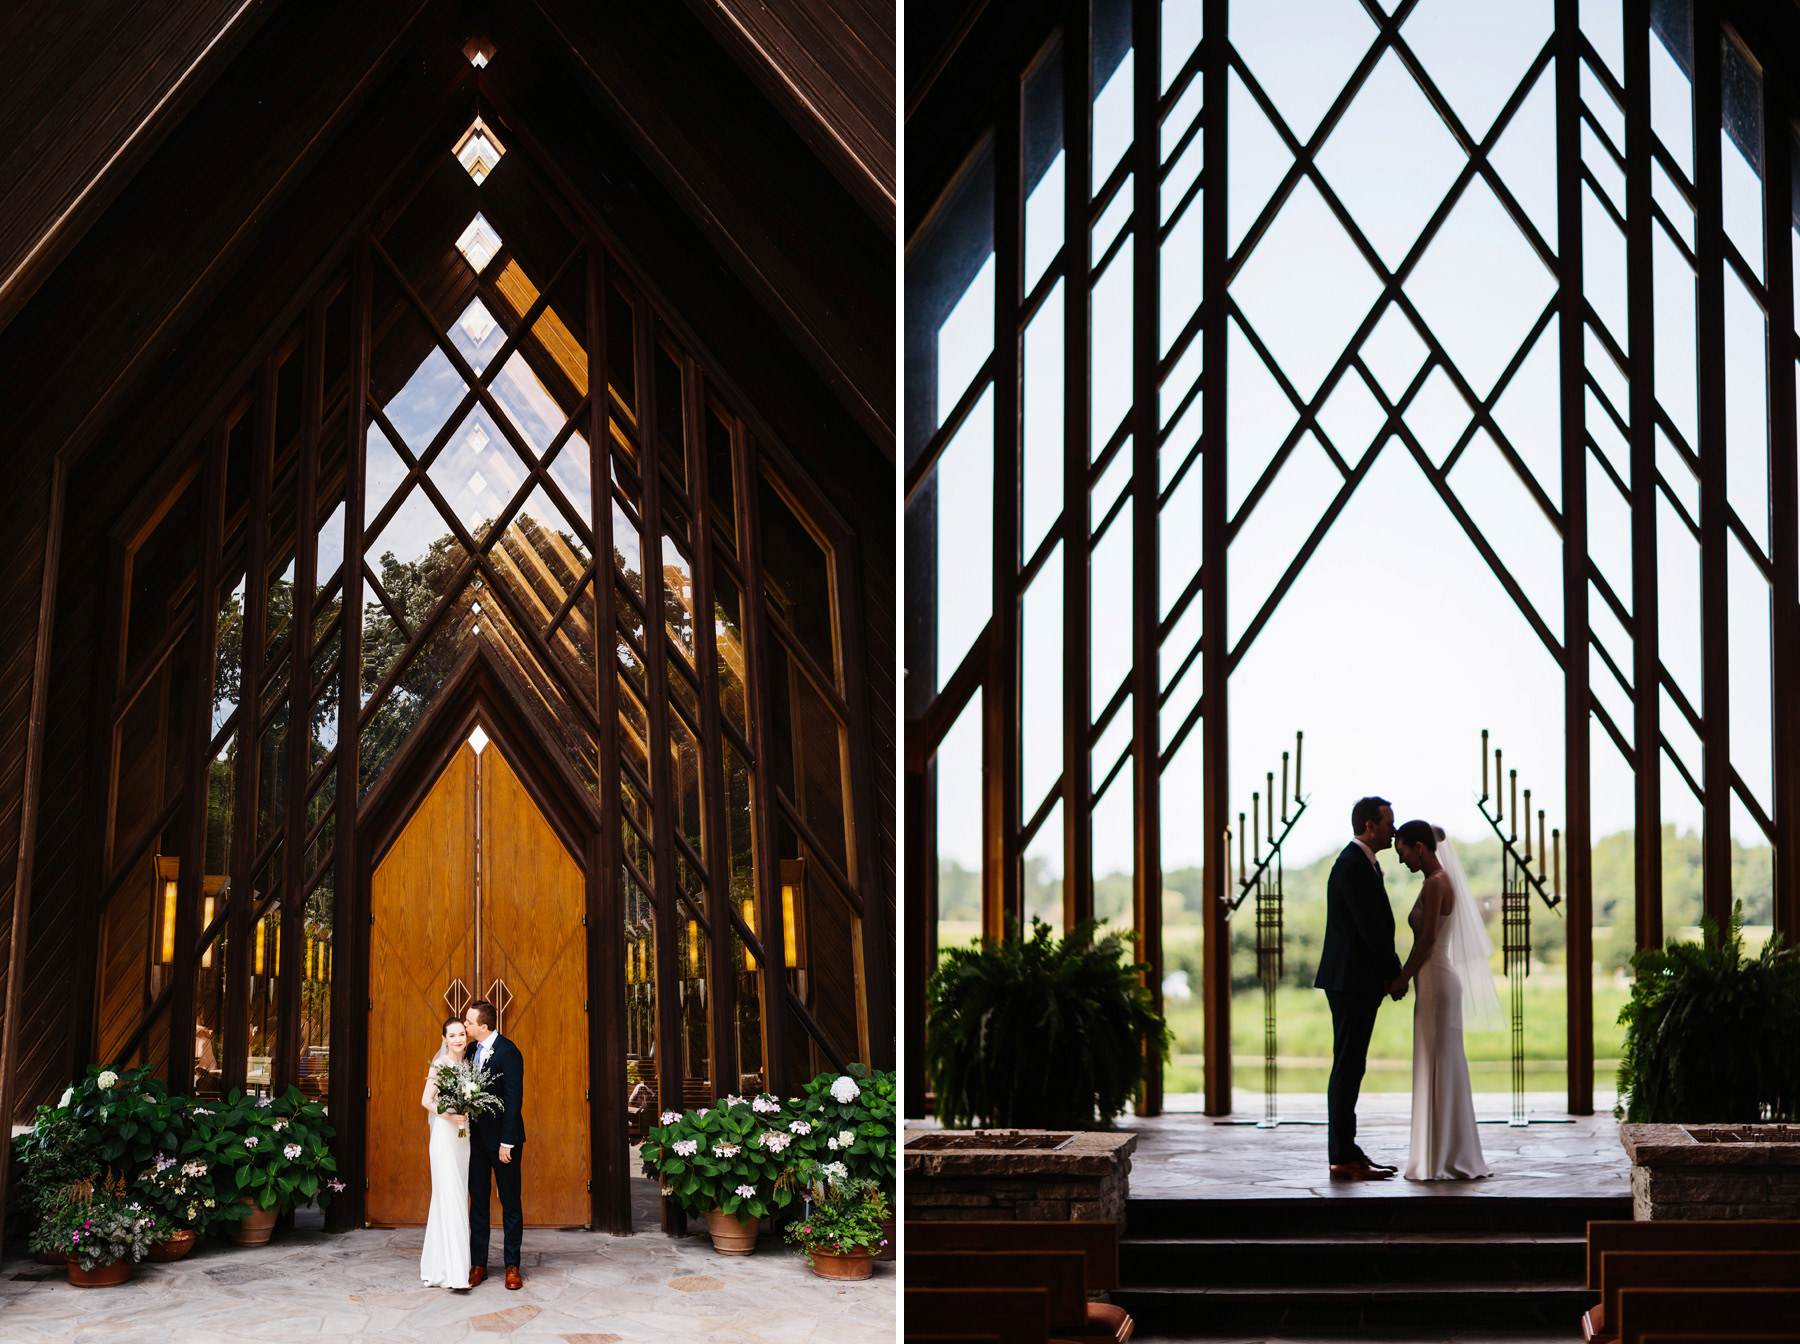 63_Powell Gardens Elopement Kansas City, Missouri_Kindling Wedding Photography.JPG